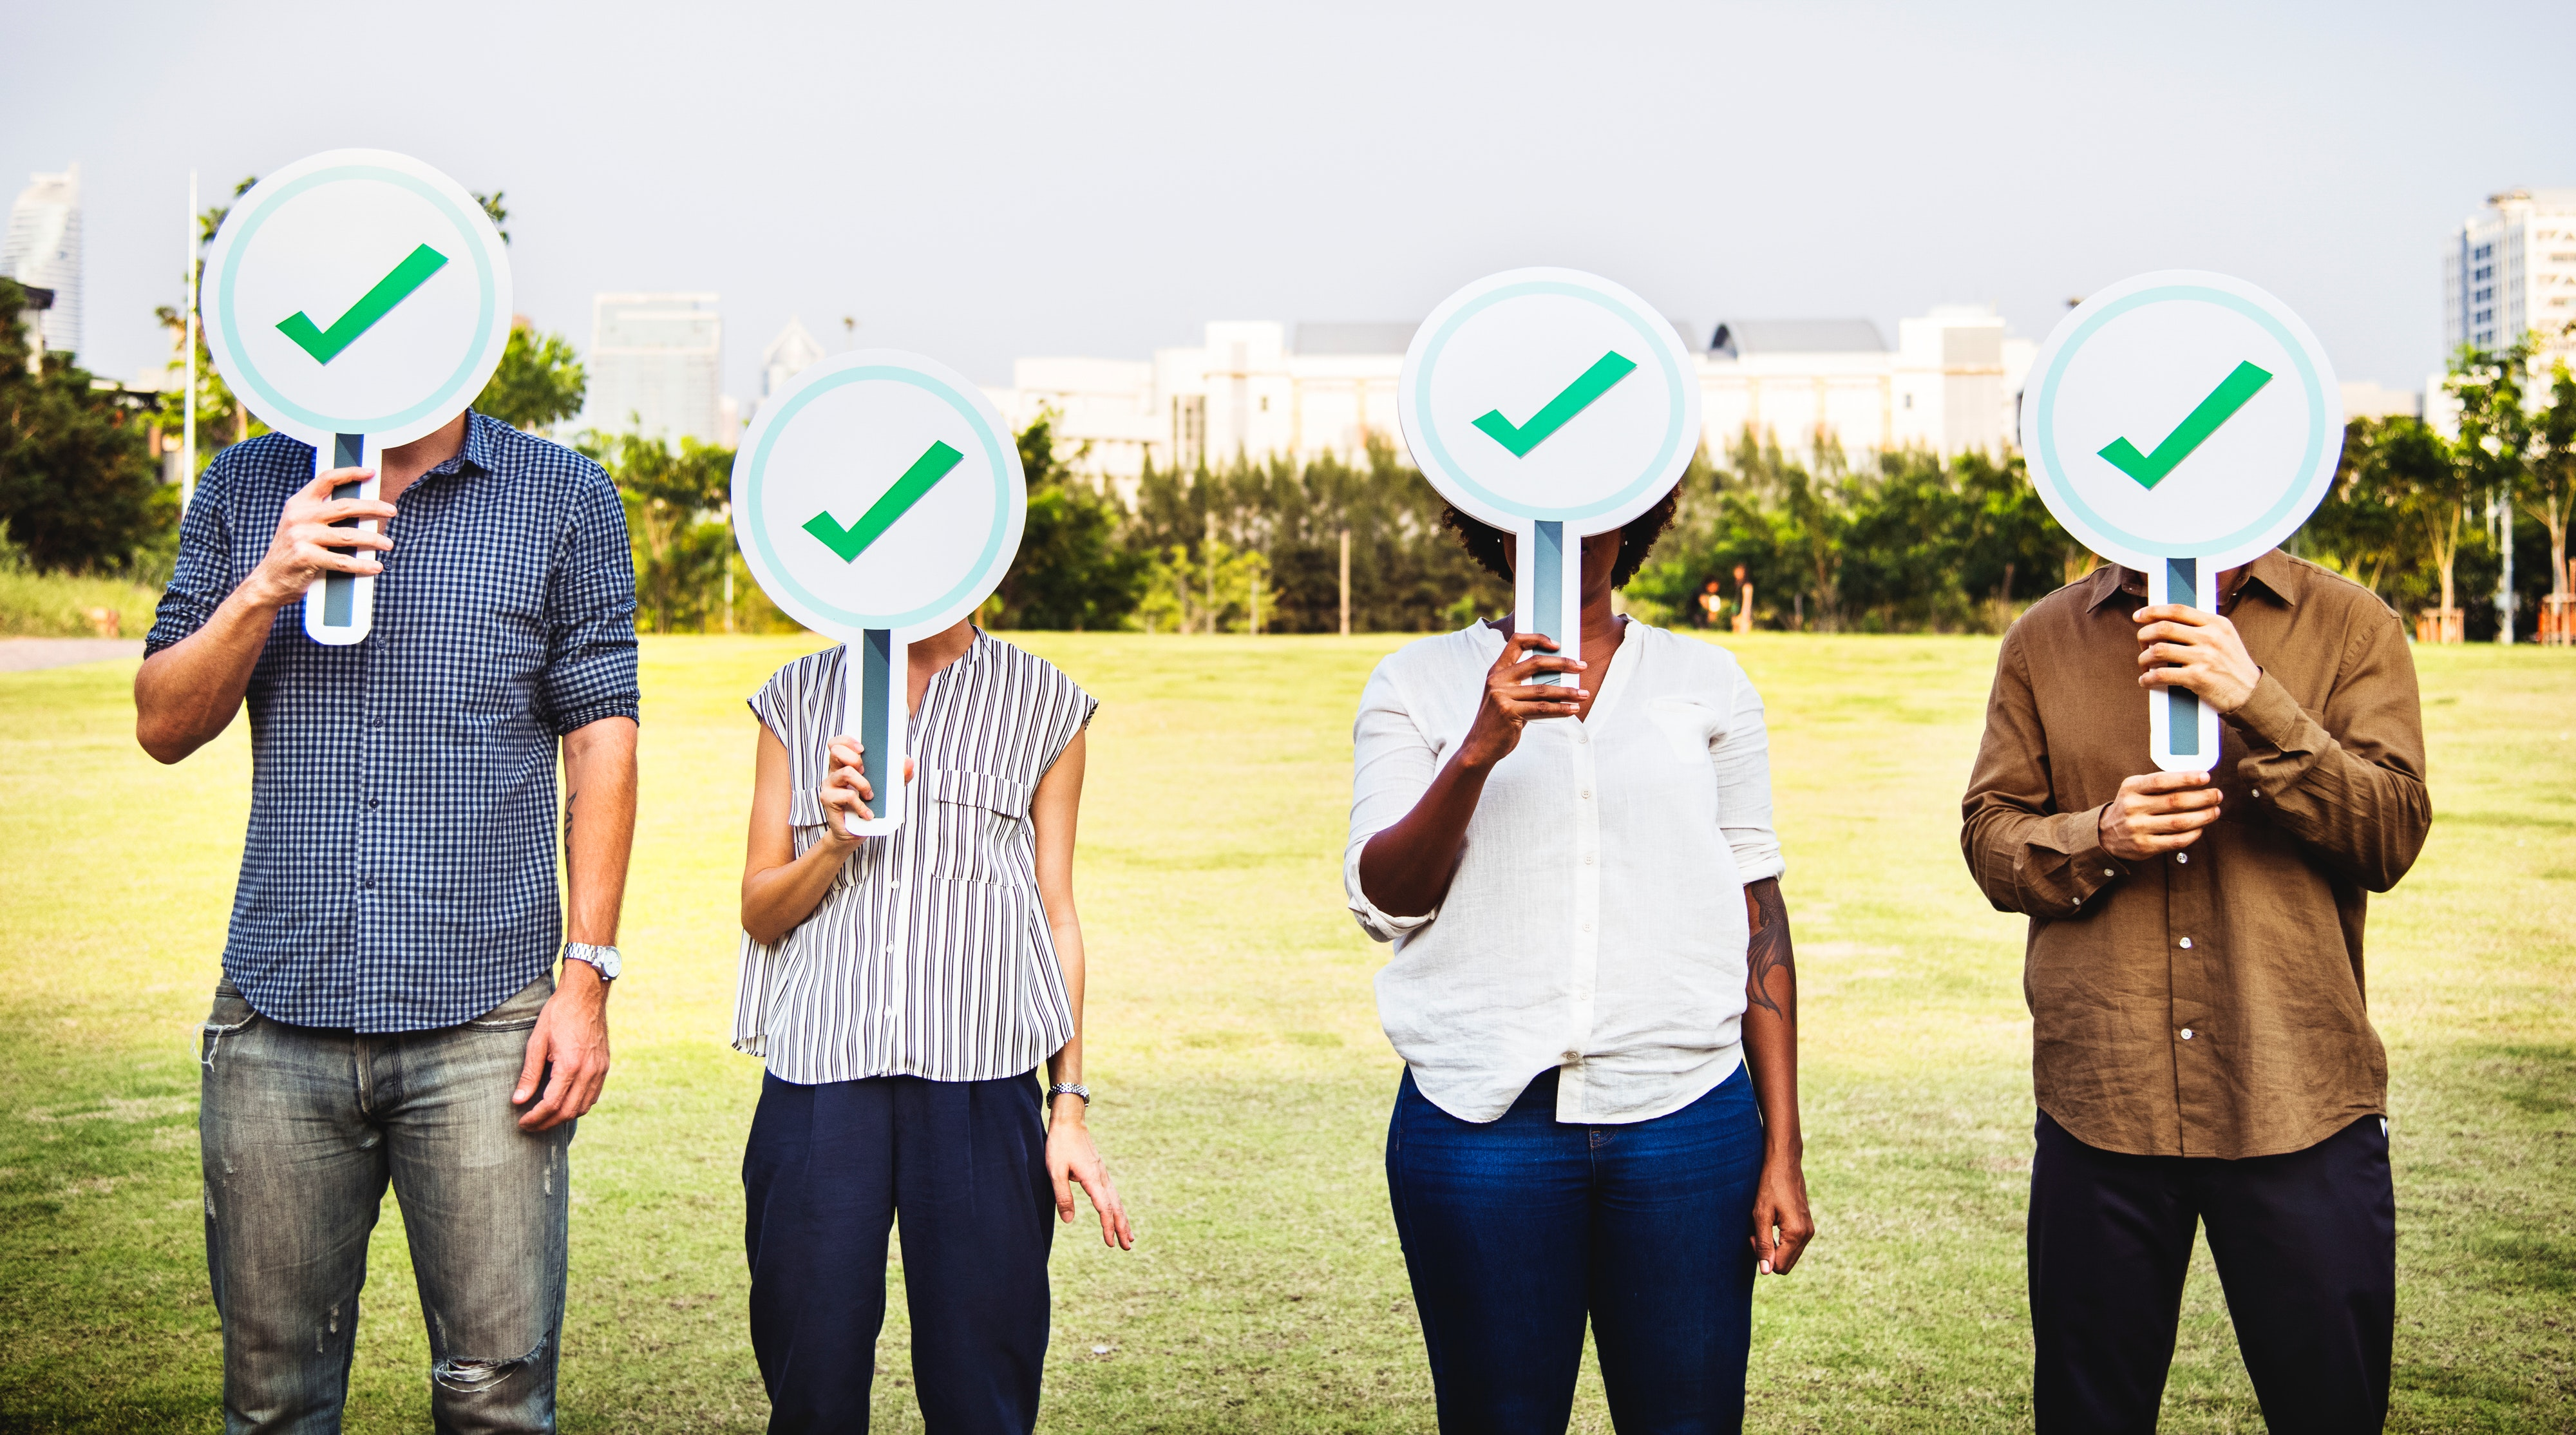 Four people lined up in a field, each with a sign displaying a green tick in front of their face.